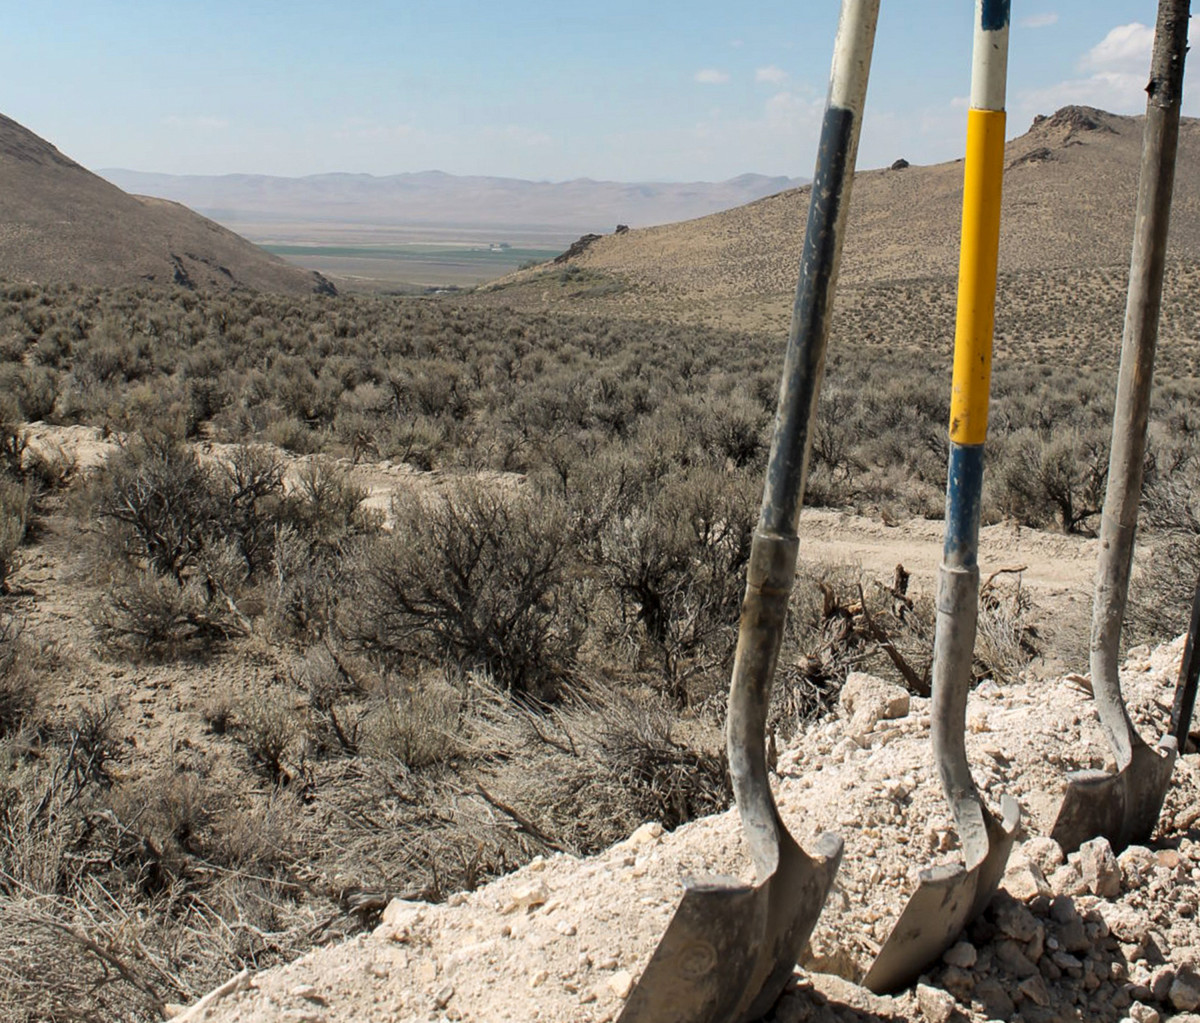 In this Sept. 13, 2018, file photo, exploration drilling continues for Permitting Lithium Nevada Corp.'s Thacker Pass Project on the site between Orovada and Kings Valley, in Humboldt county, Nev., shown beyond a driller's shovels in the distance. A federal judge in Nevada has denied tribal leaders' bid to temporarily block digging for an archaeological study required before construction can begin for a lithium mine. U.S. District Judge Miranda Du refused their request late Friday, Sept. Sept. 3, 2021, for a preliminary injunction blocking the trenching at the site of the largest known lithium deposit in the U.S. (Suzanne Featherston/The Daily Free Press via AP, File)